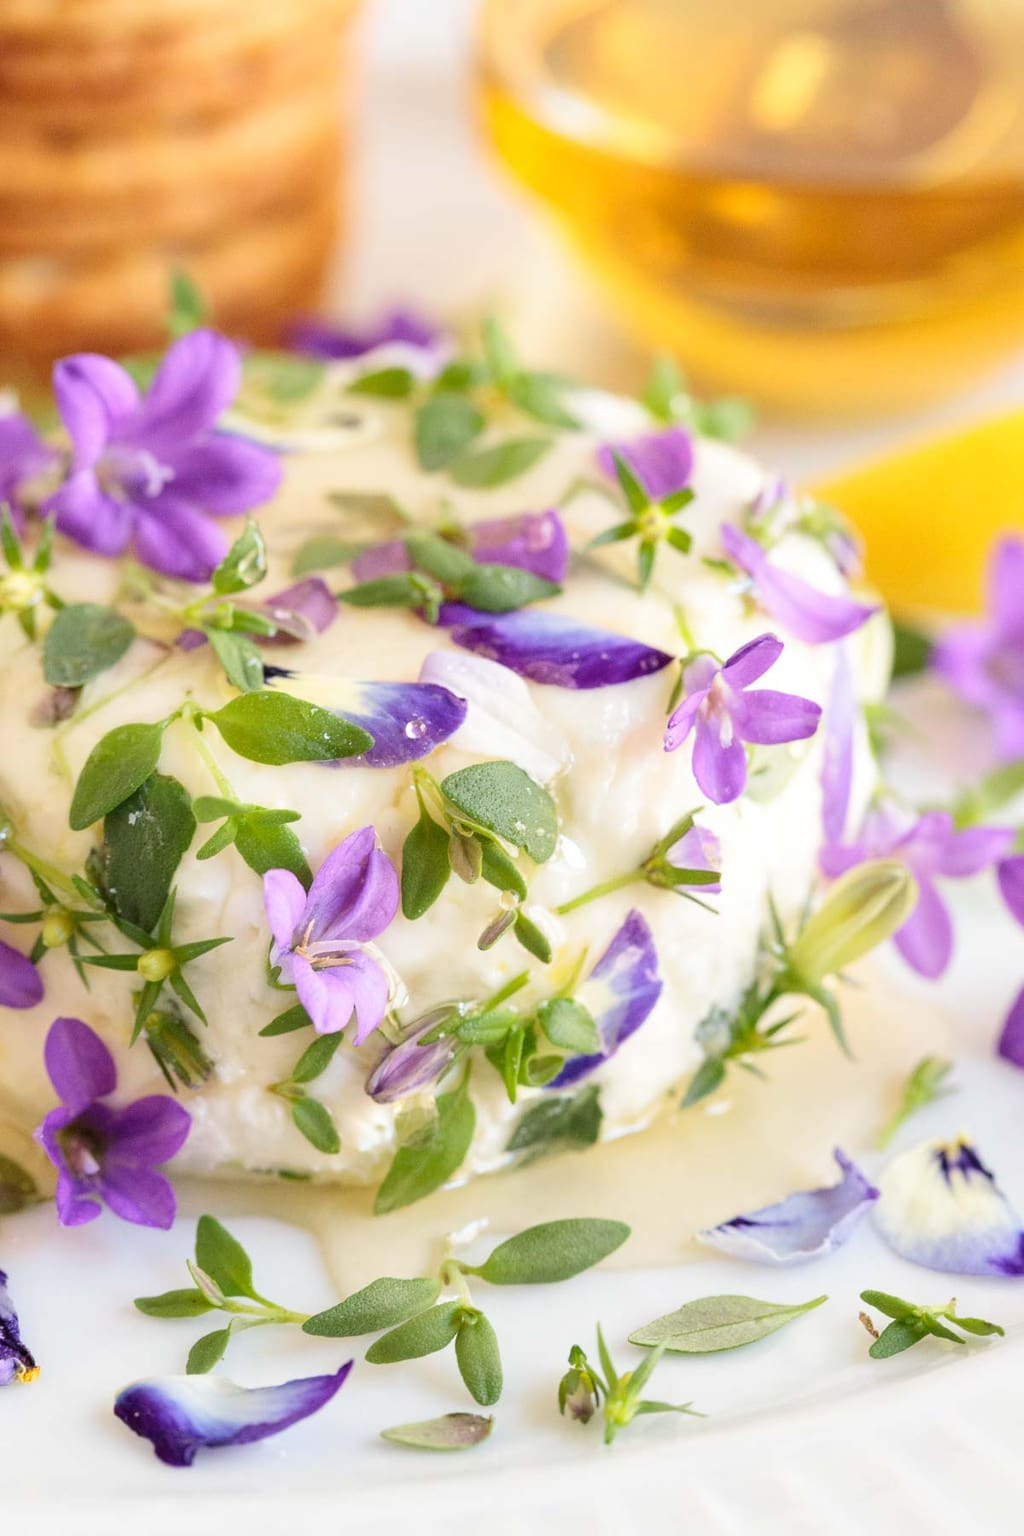 Ultra closeup photo of an Easy Goat Cheese Appetizer decorated with purple edible flowers, blossoms and buds.